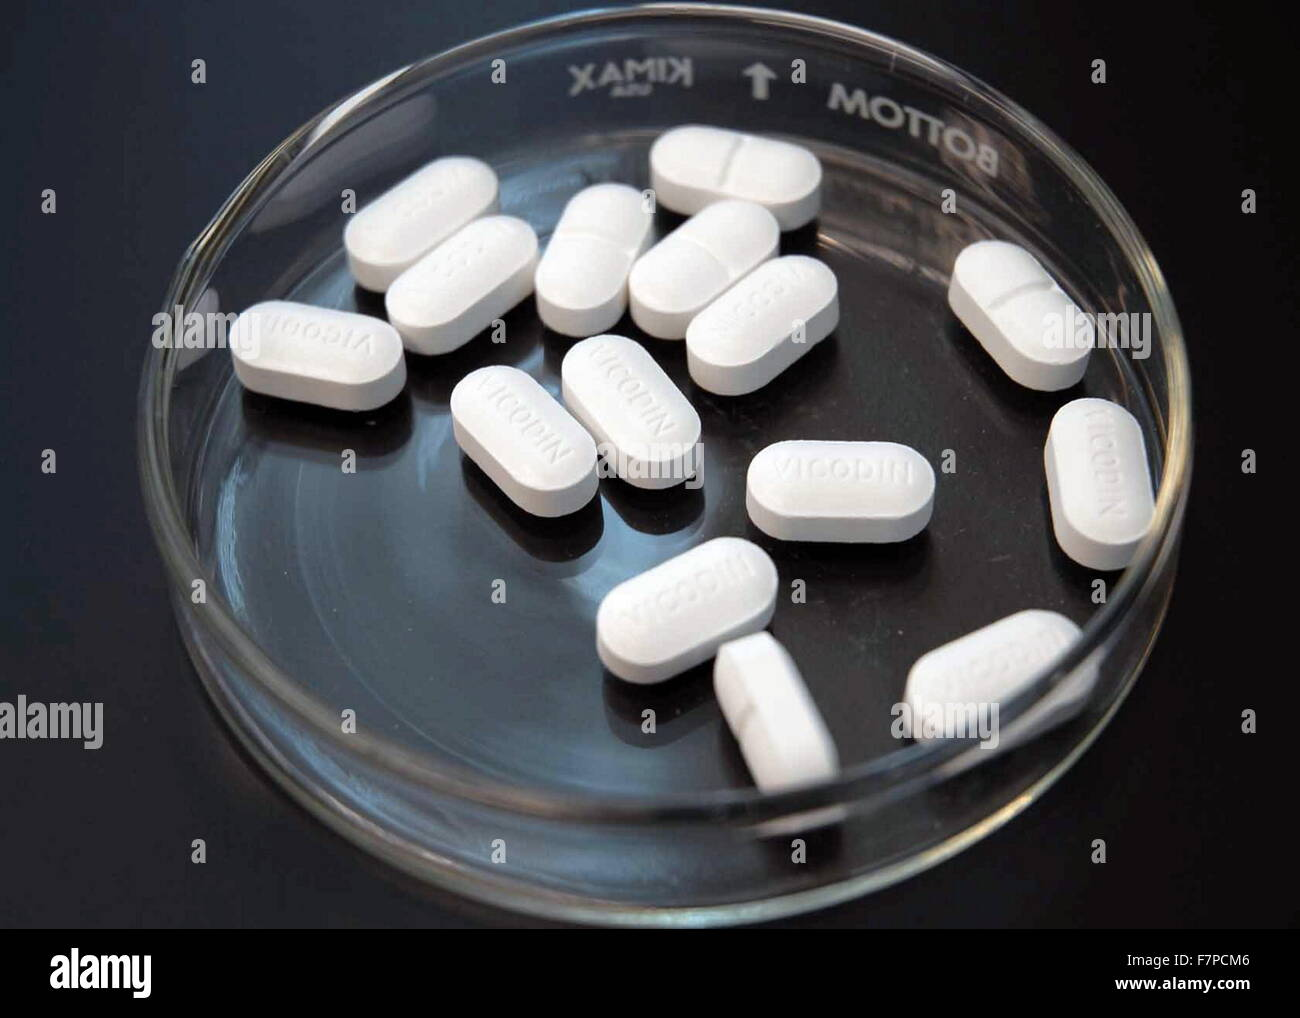 Hydrocodone a semi-synthetic opioid synthesized from codeine, one of the opioid alkaloids found in the opium poppy. - Stock Image